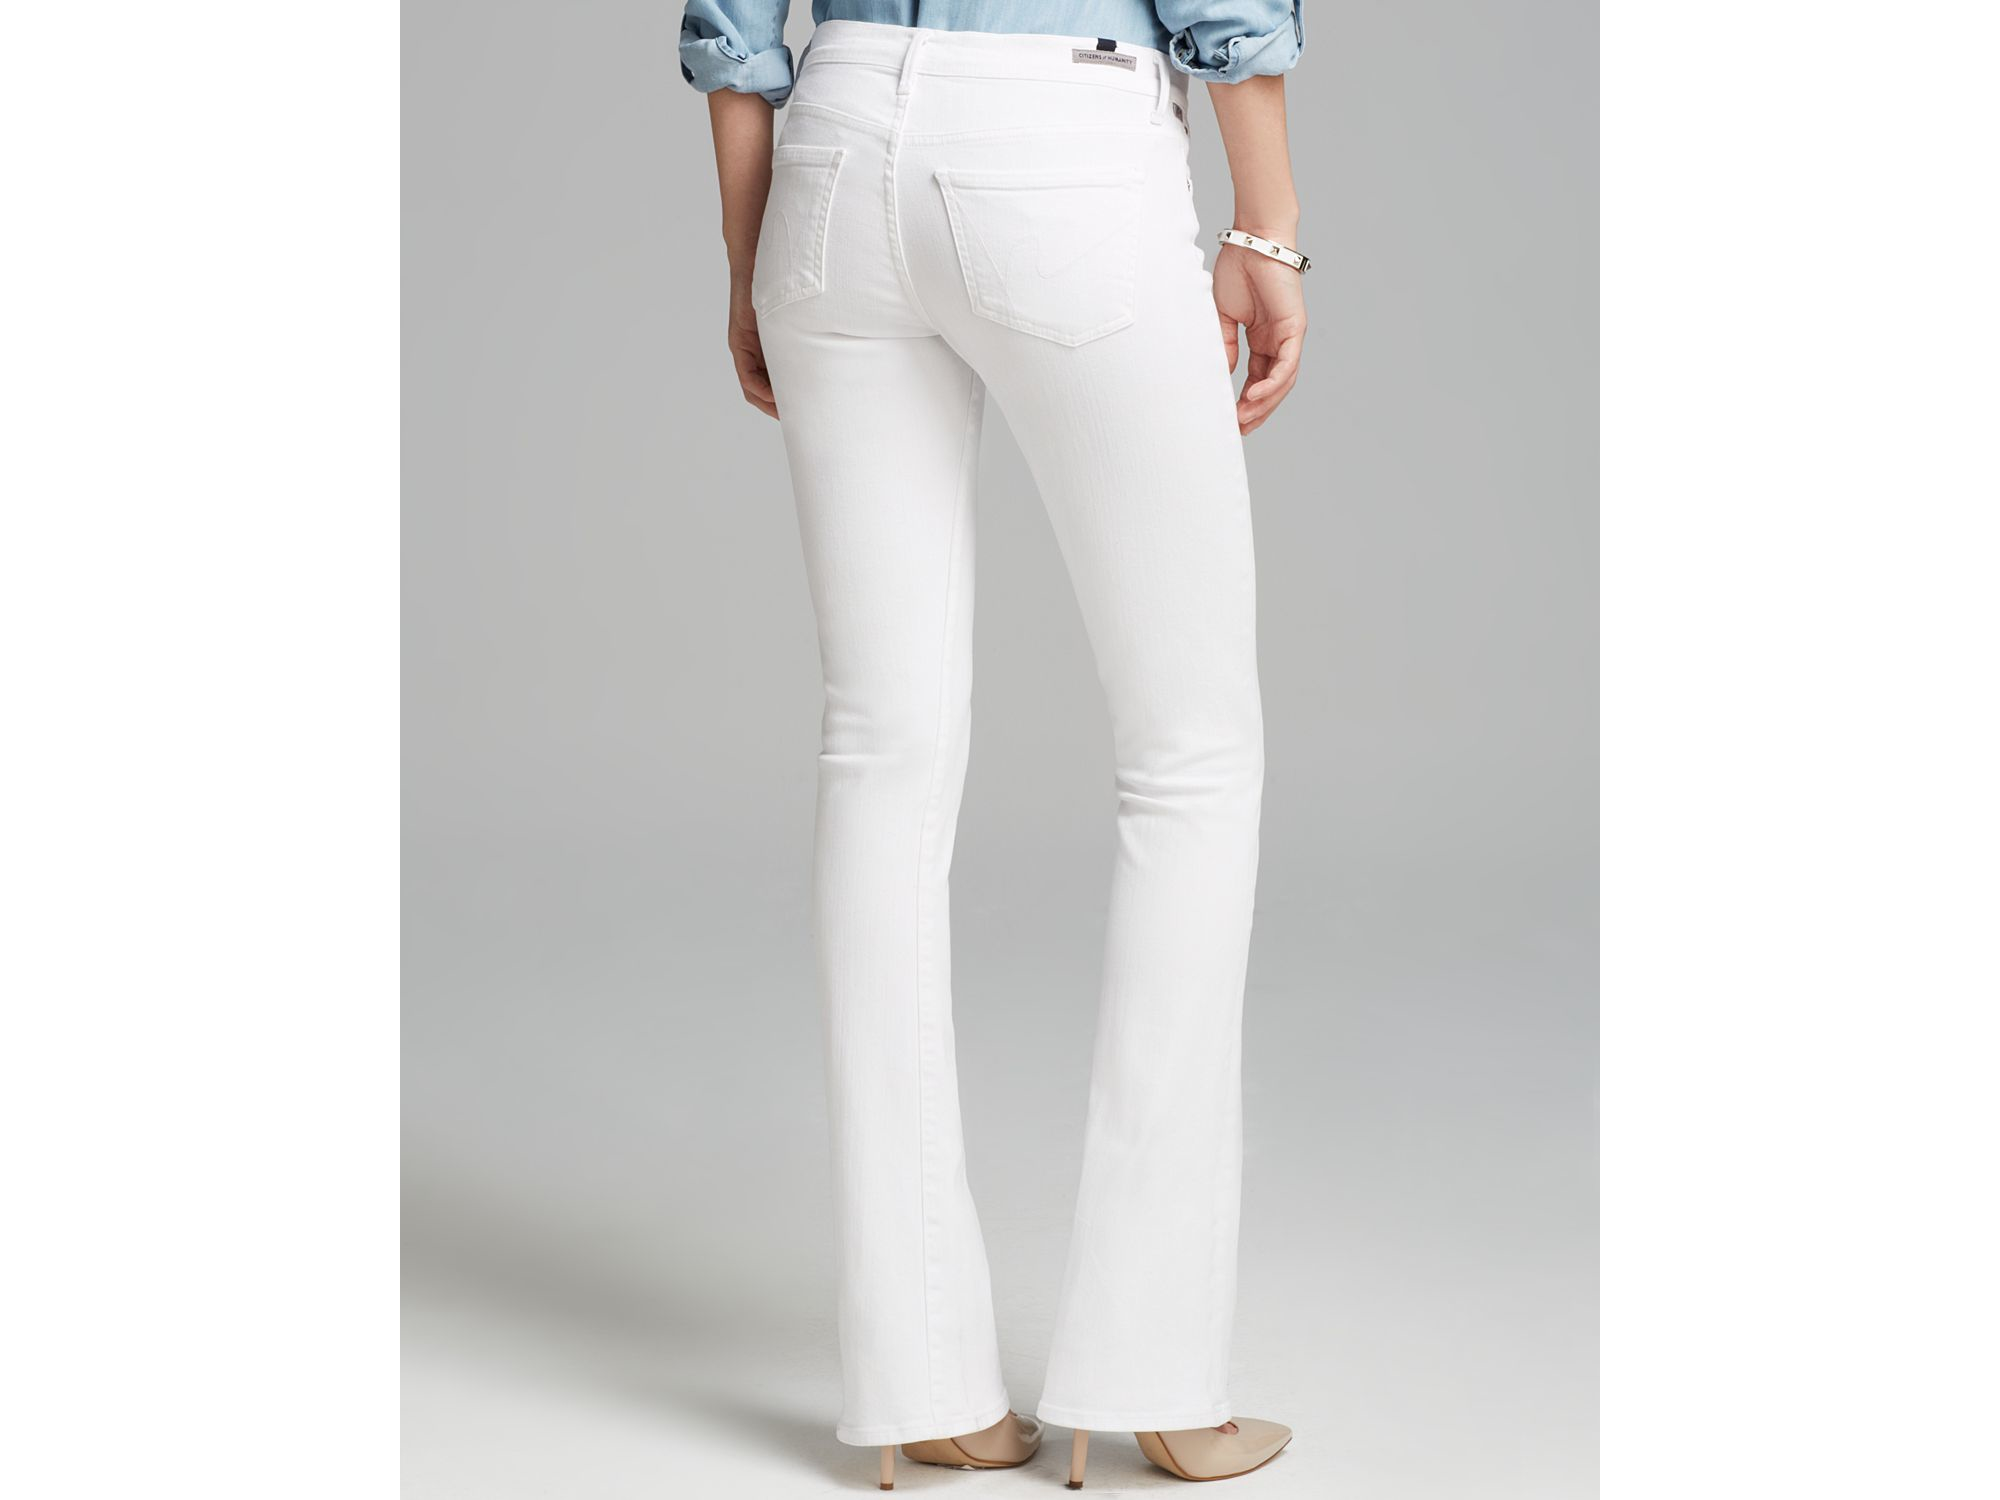 Citizens of humanity Jeans - Emannuelle Bootcut In Optic White in ...